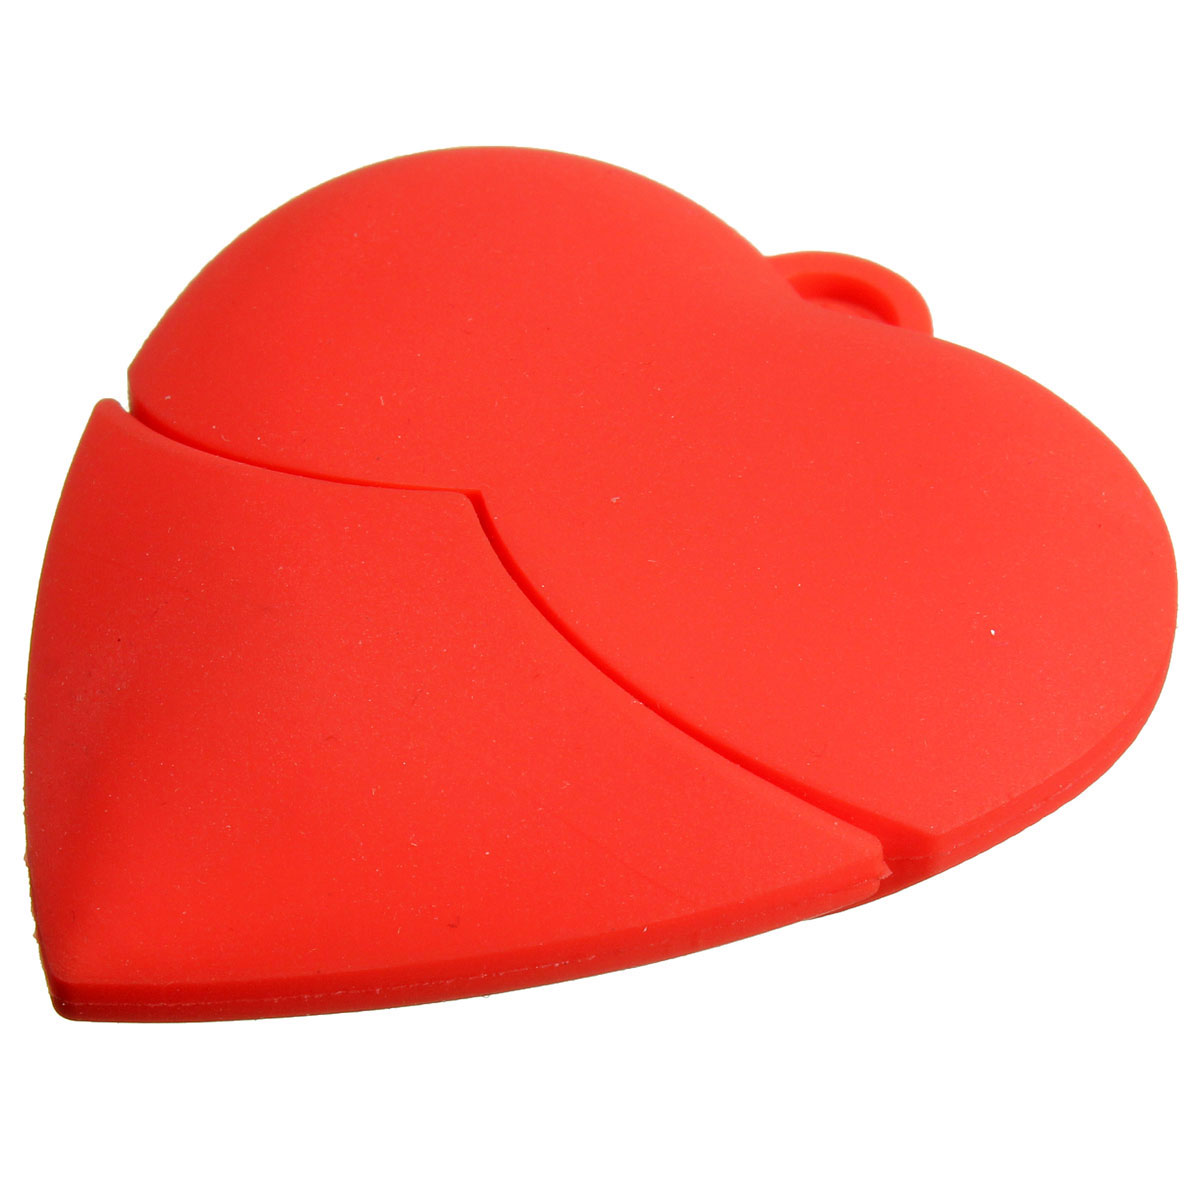 High Speed Portable 4GB Capacity Red Heart Shape USB 2.0 Flash Pen Drive Memory Stick Pendrive Storage Cartoon(China (Mainland))